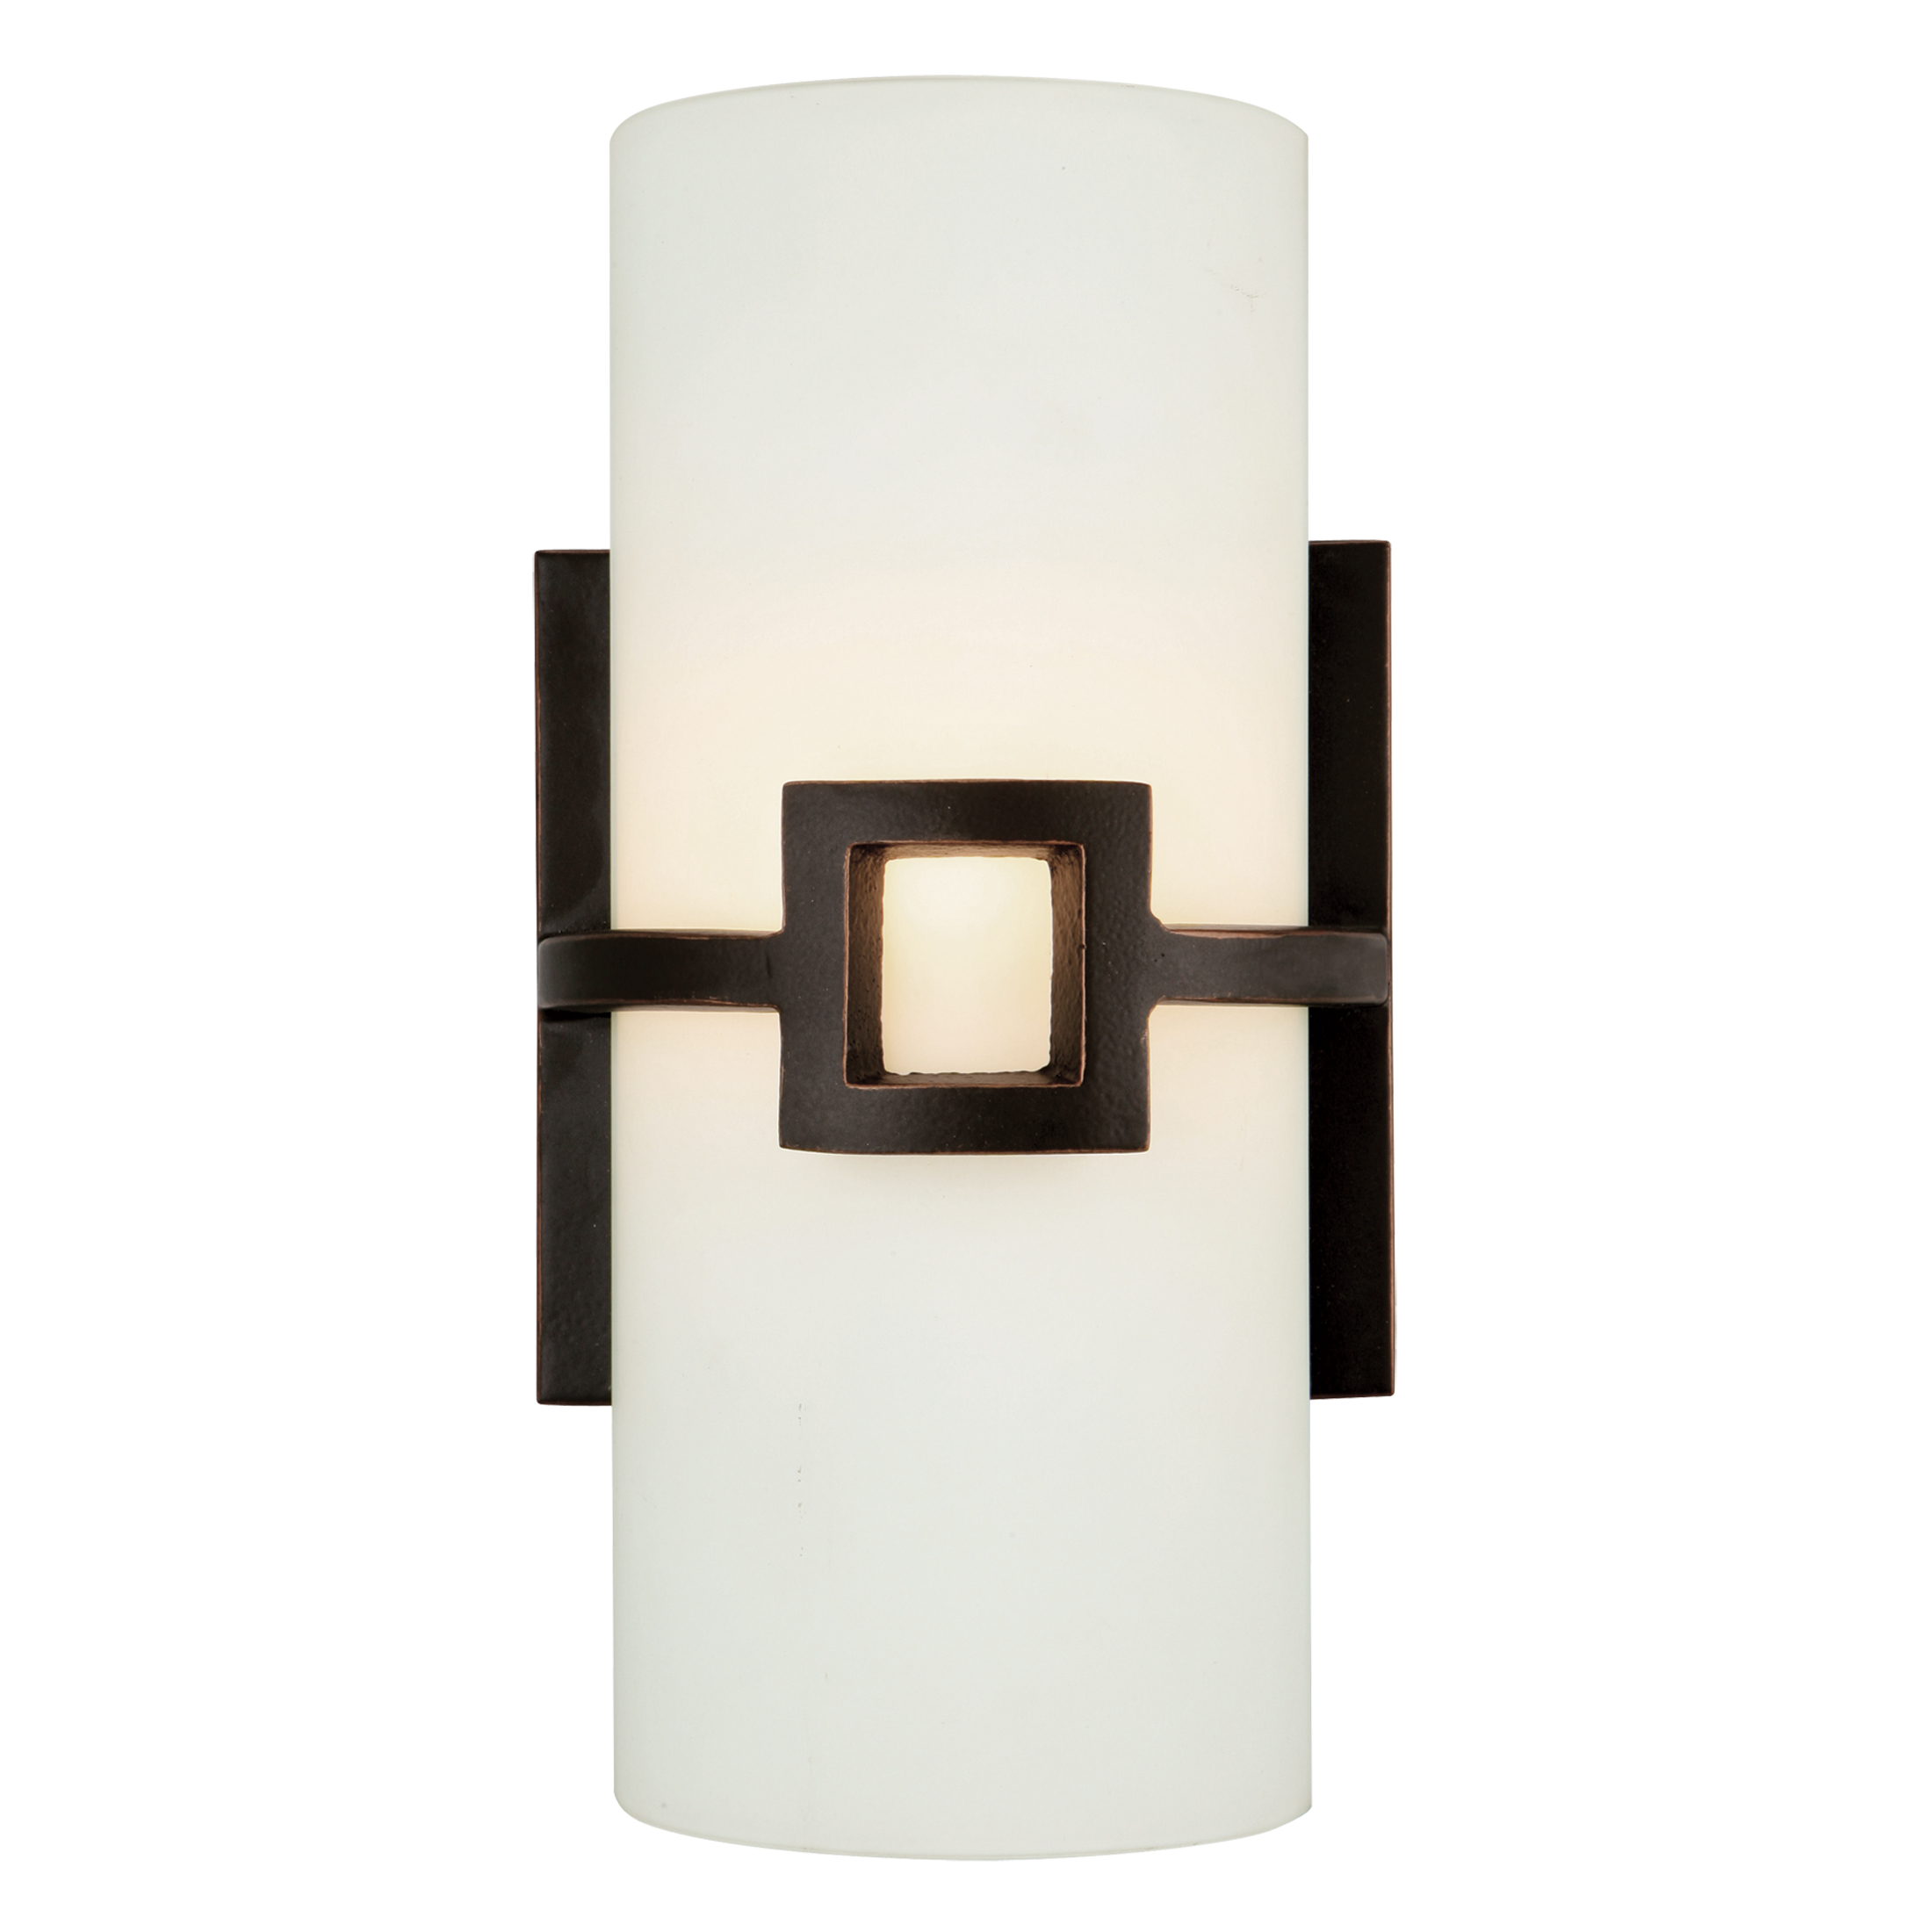 Monroe 1 light wall sconce 514604 lighting design house monroe 2 light wall sconce oil rubbed bronze 514604 aloadofball